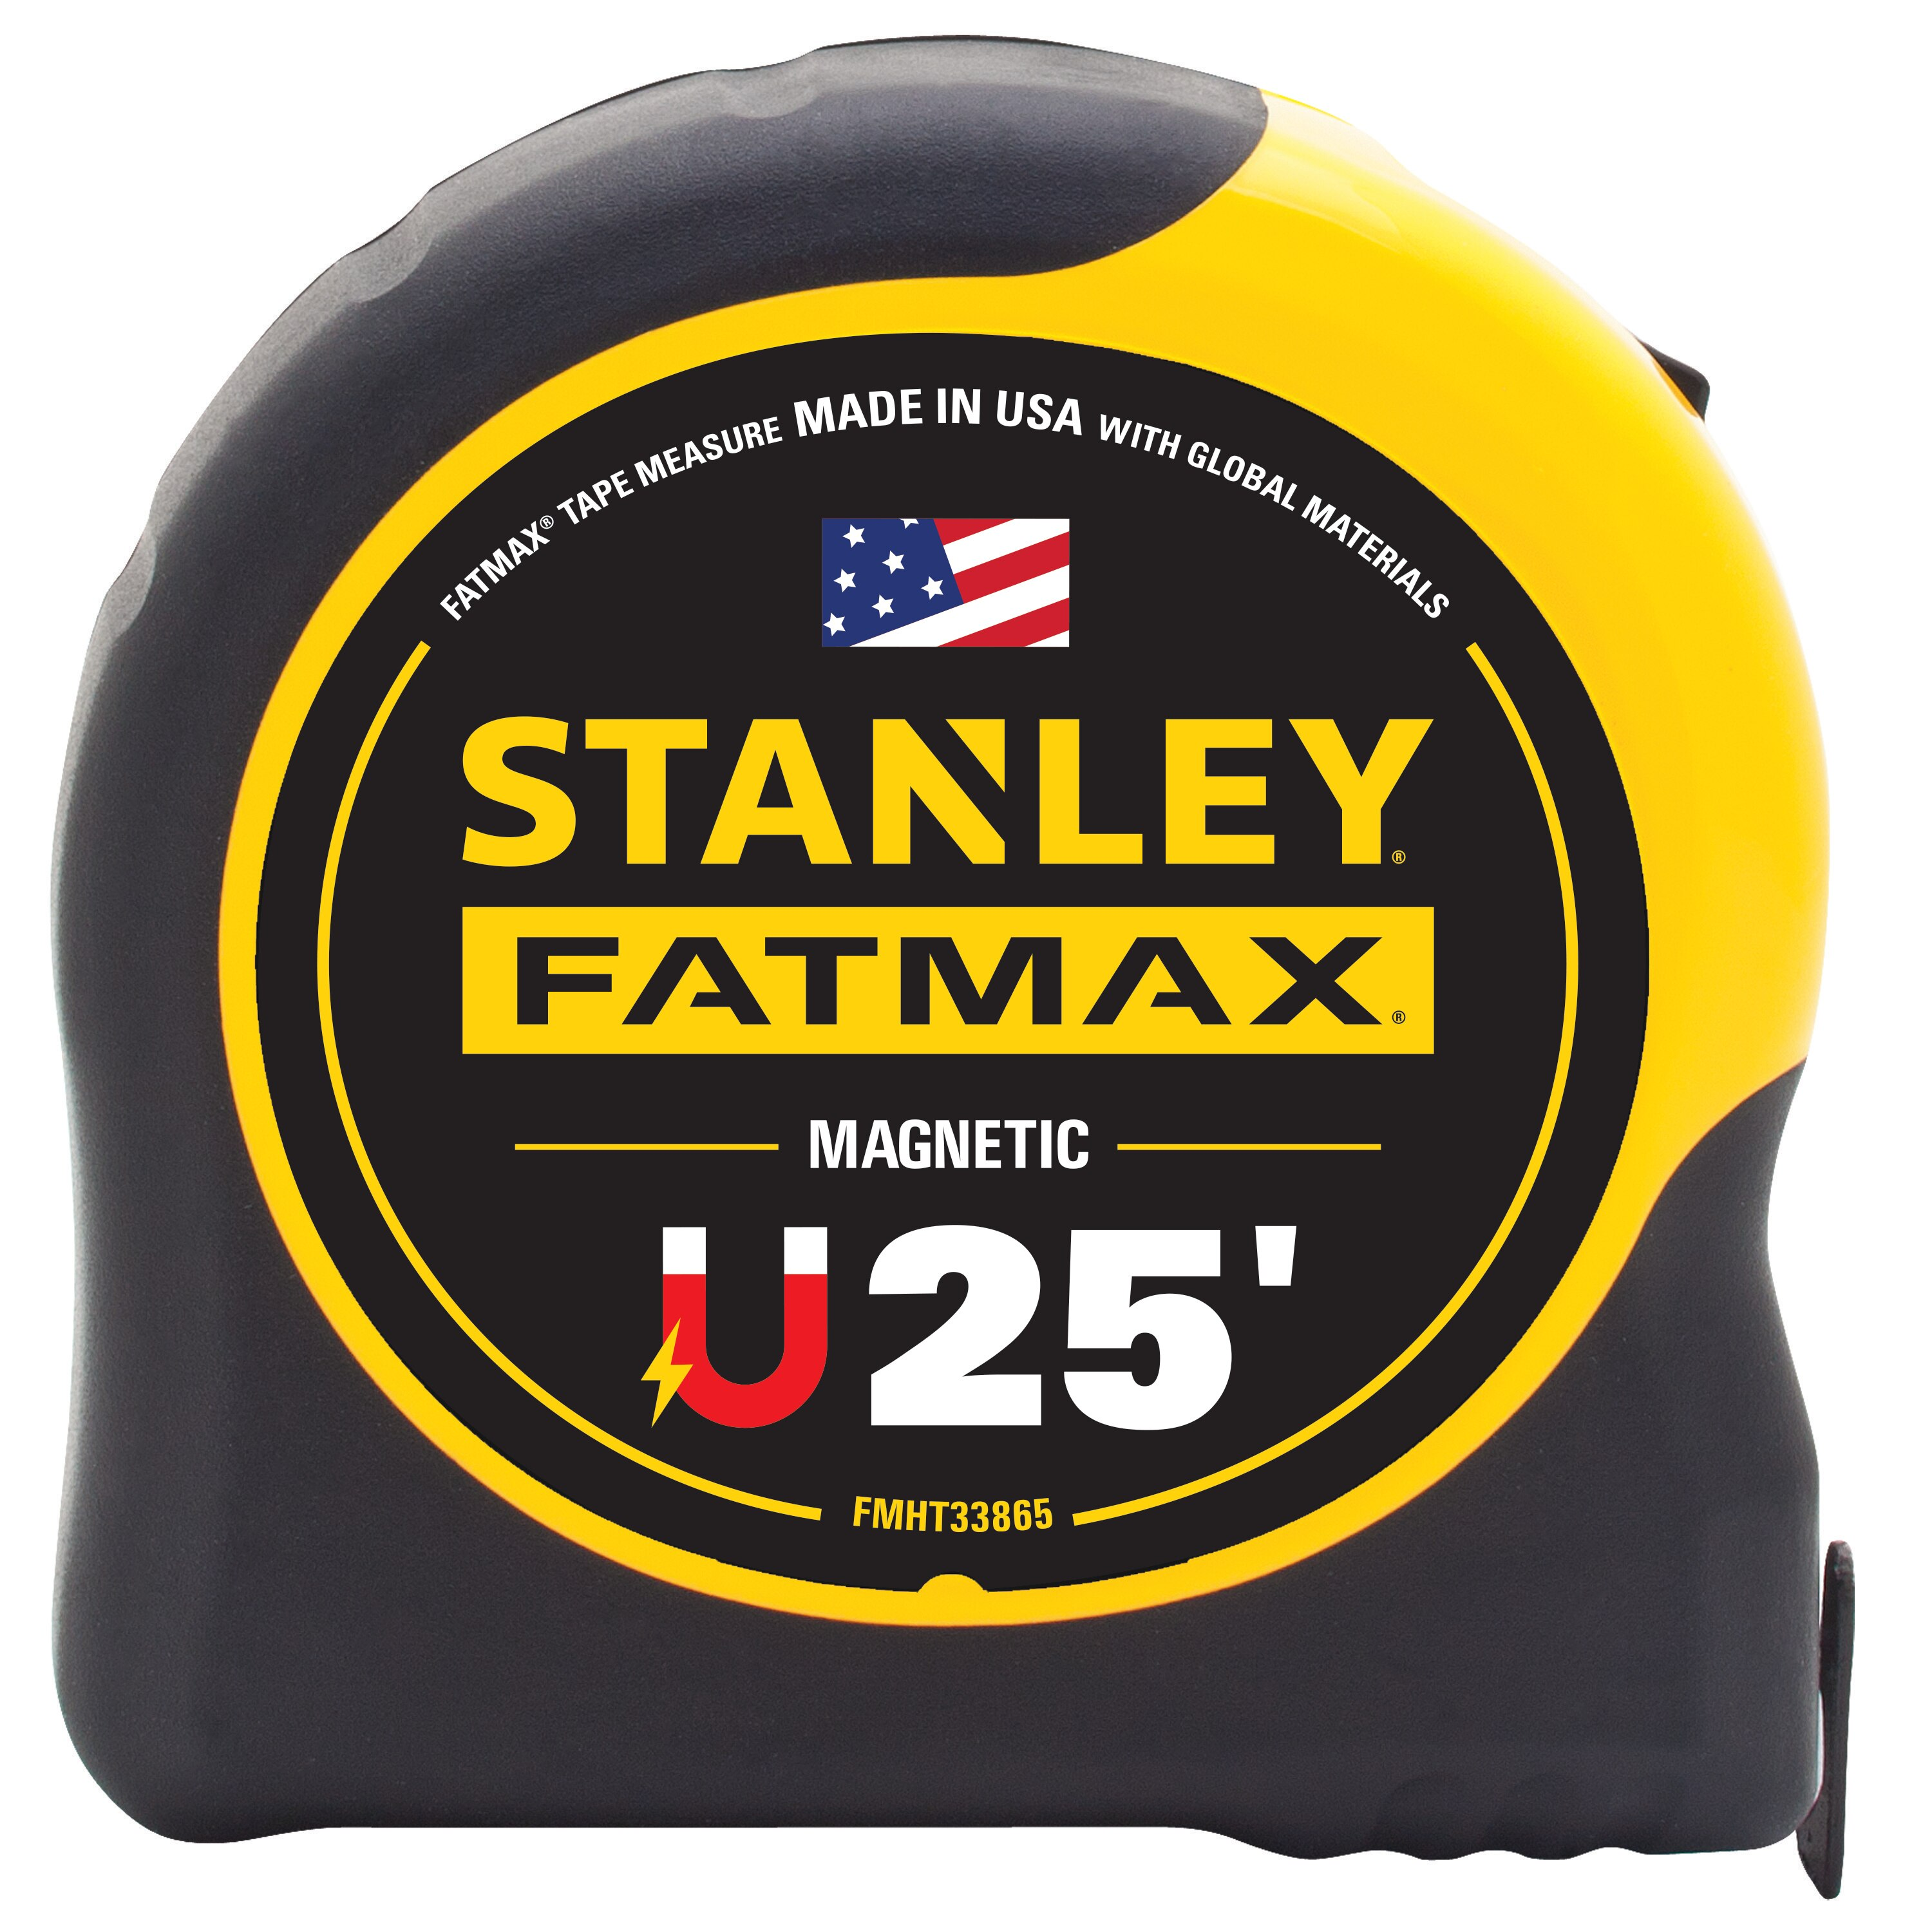 Stanley Tools - 25 ft FATMAX MagneticTape - FMHT33865